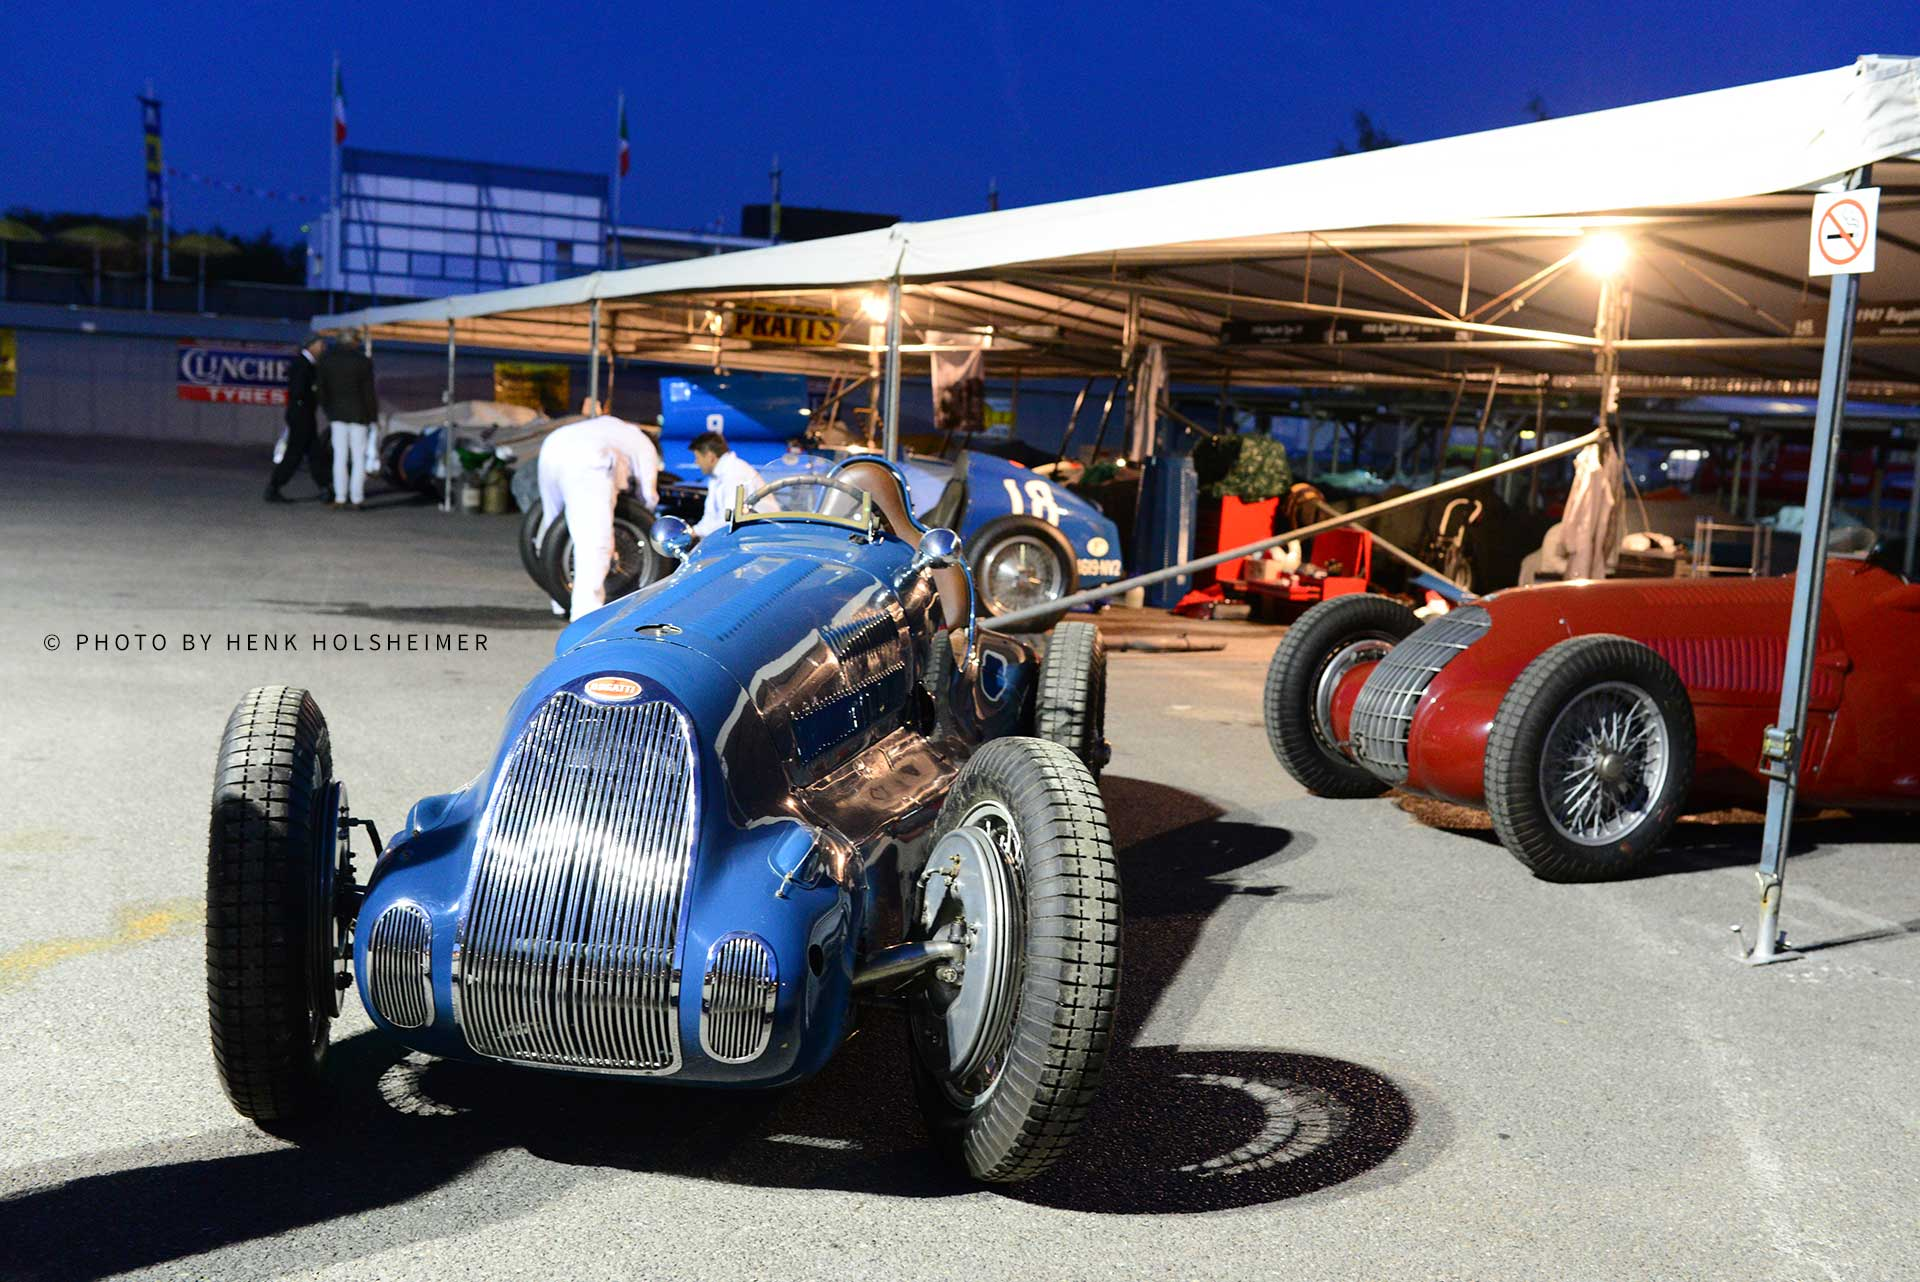 2014_Goodwood-Revival_pod_14091201